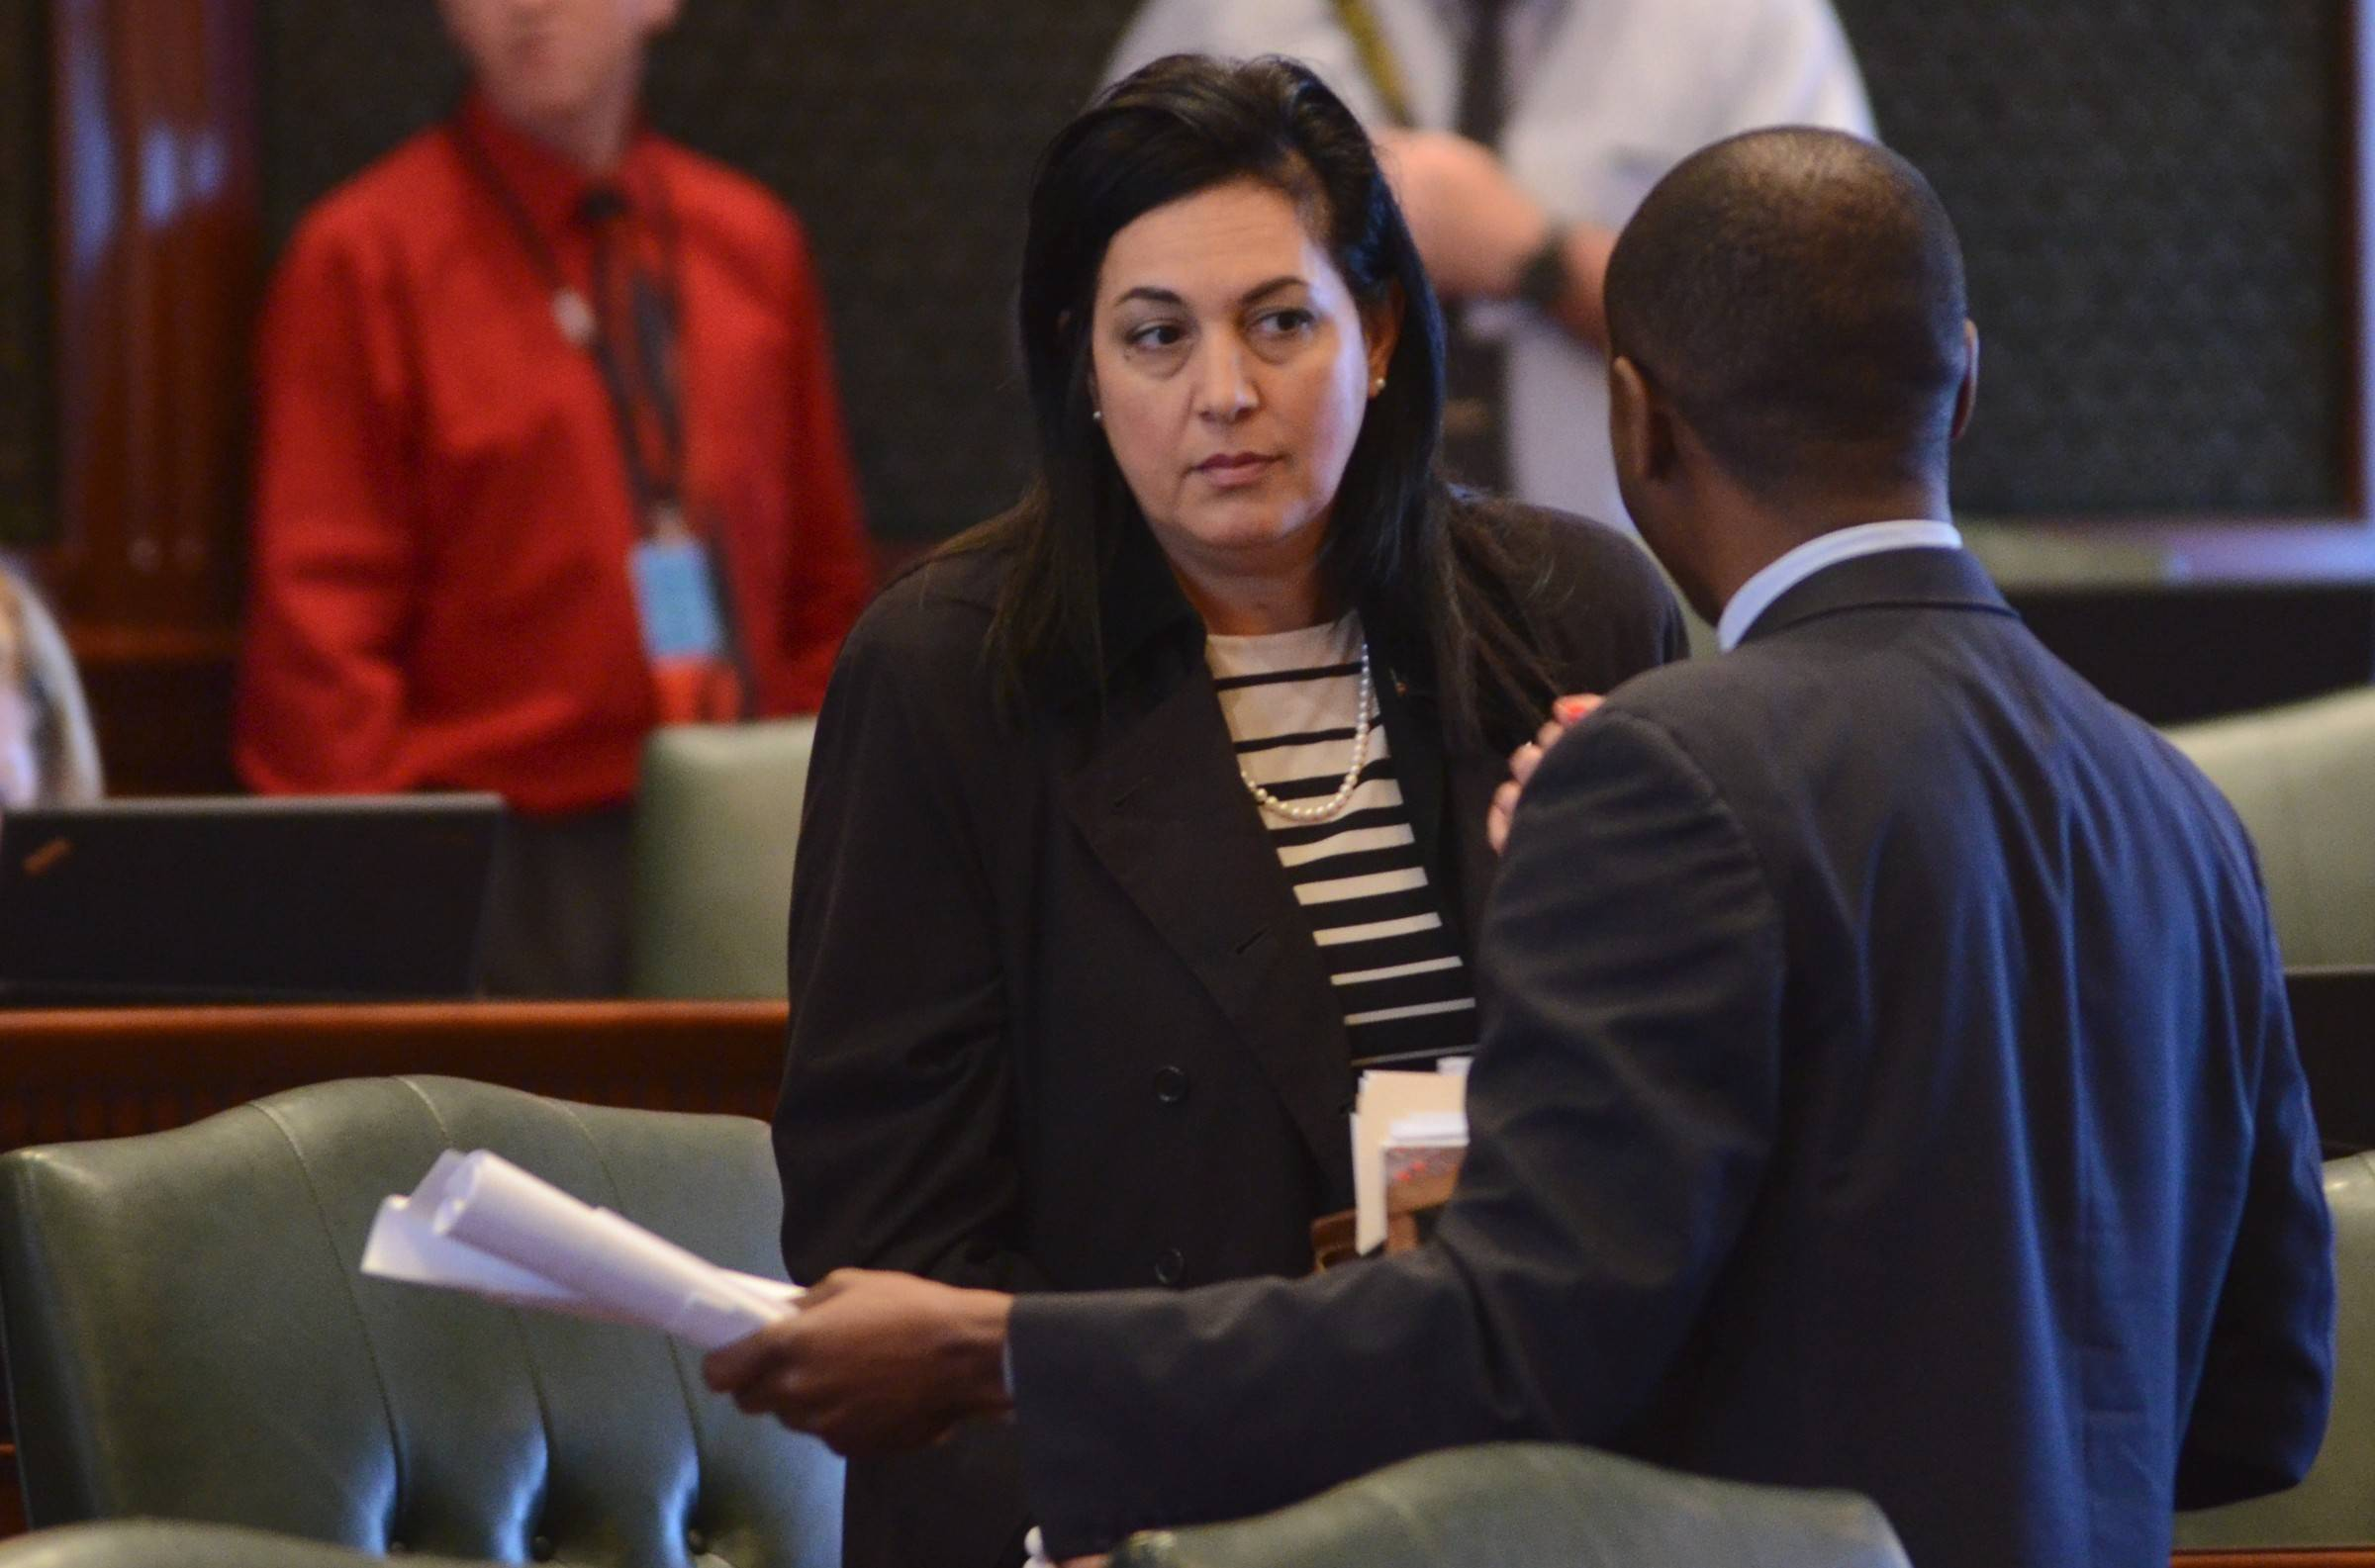 State Rep. Linda Chapa LaVia, an Aurora Democrat, speaks with state Rep. La Shawn Ford, a Chicago Democrat, on the Illinois House floor. Chapa LaVia says she isn't working toward a state takeover of the Illinois High School Association.